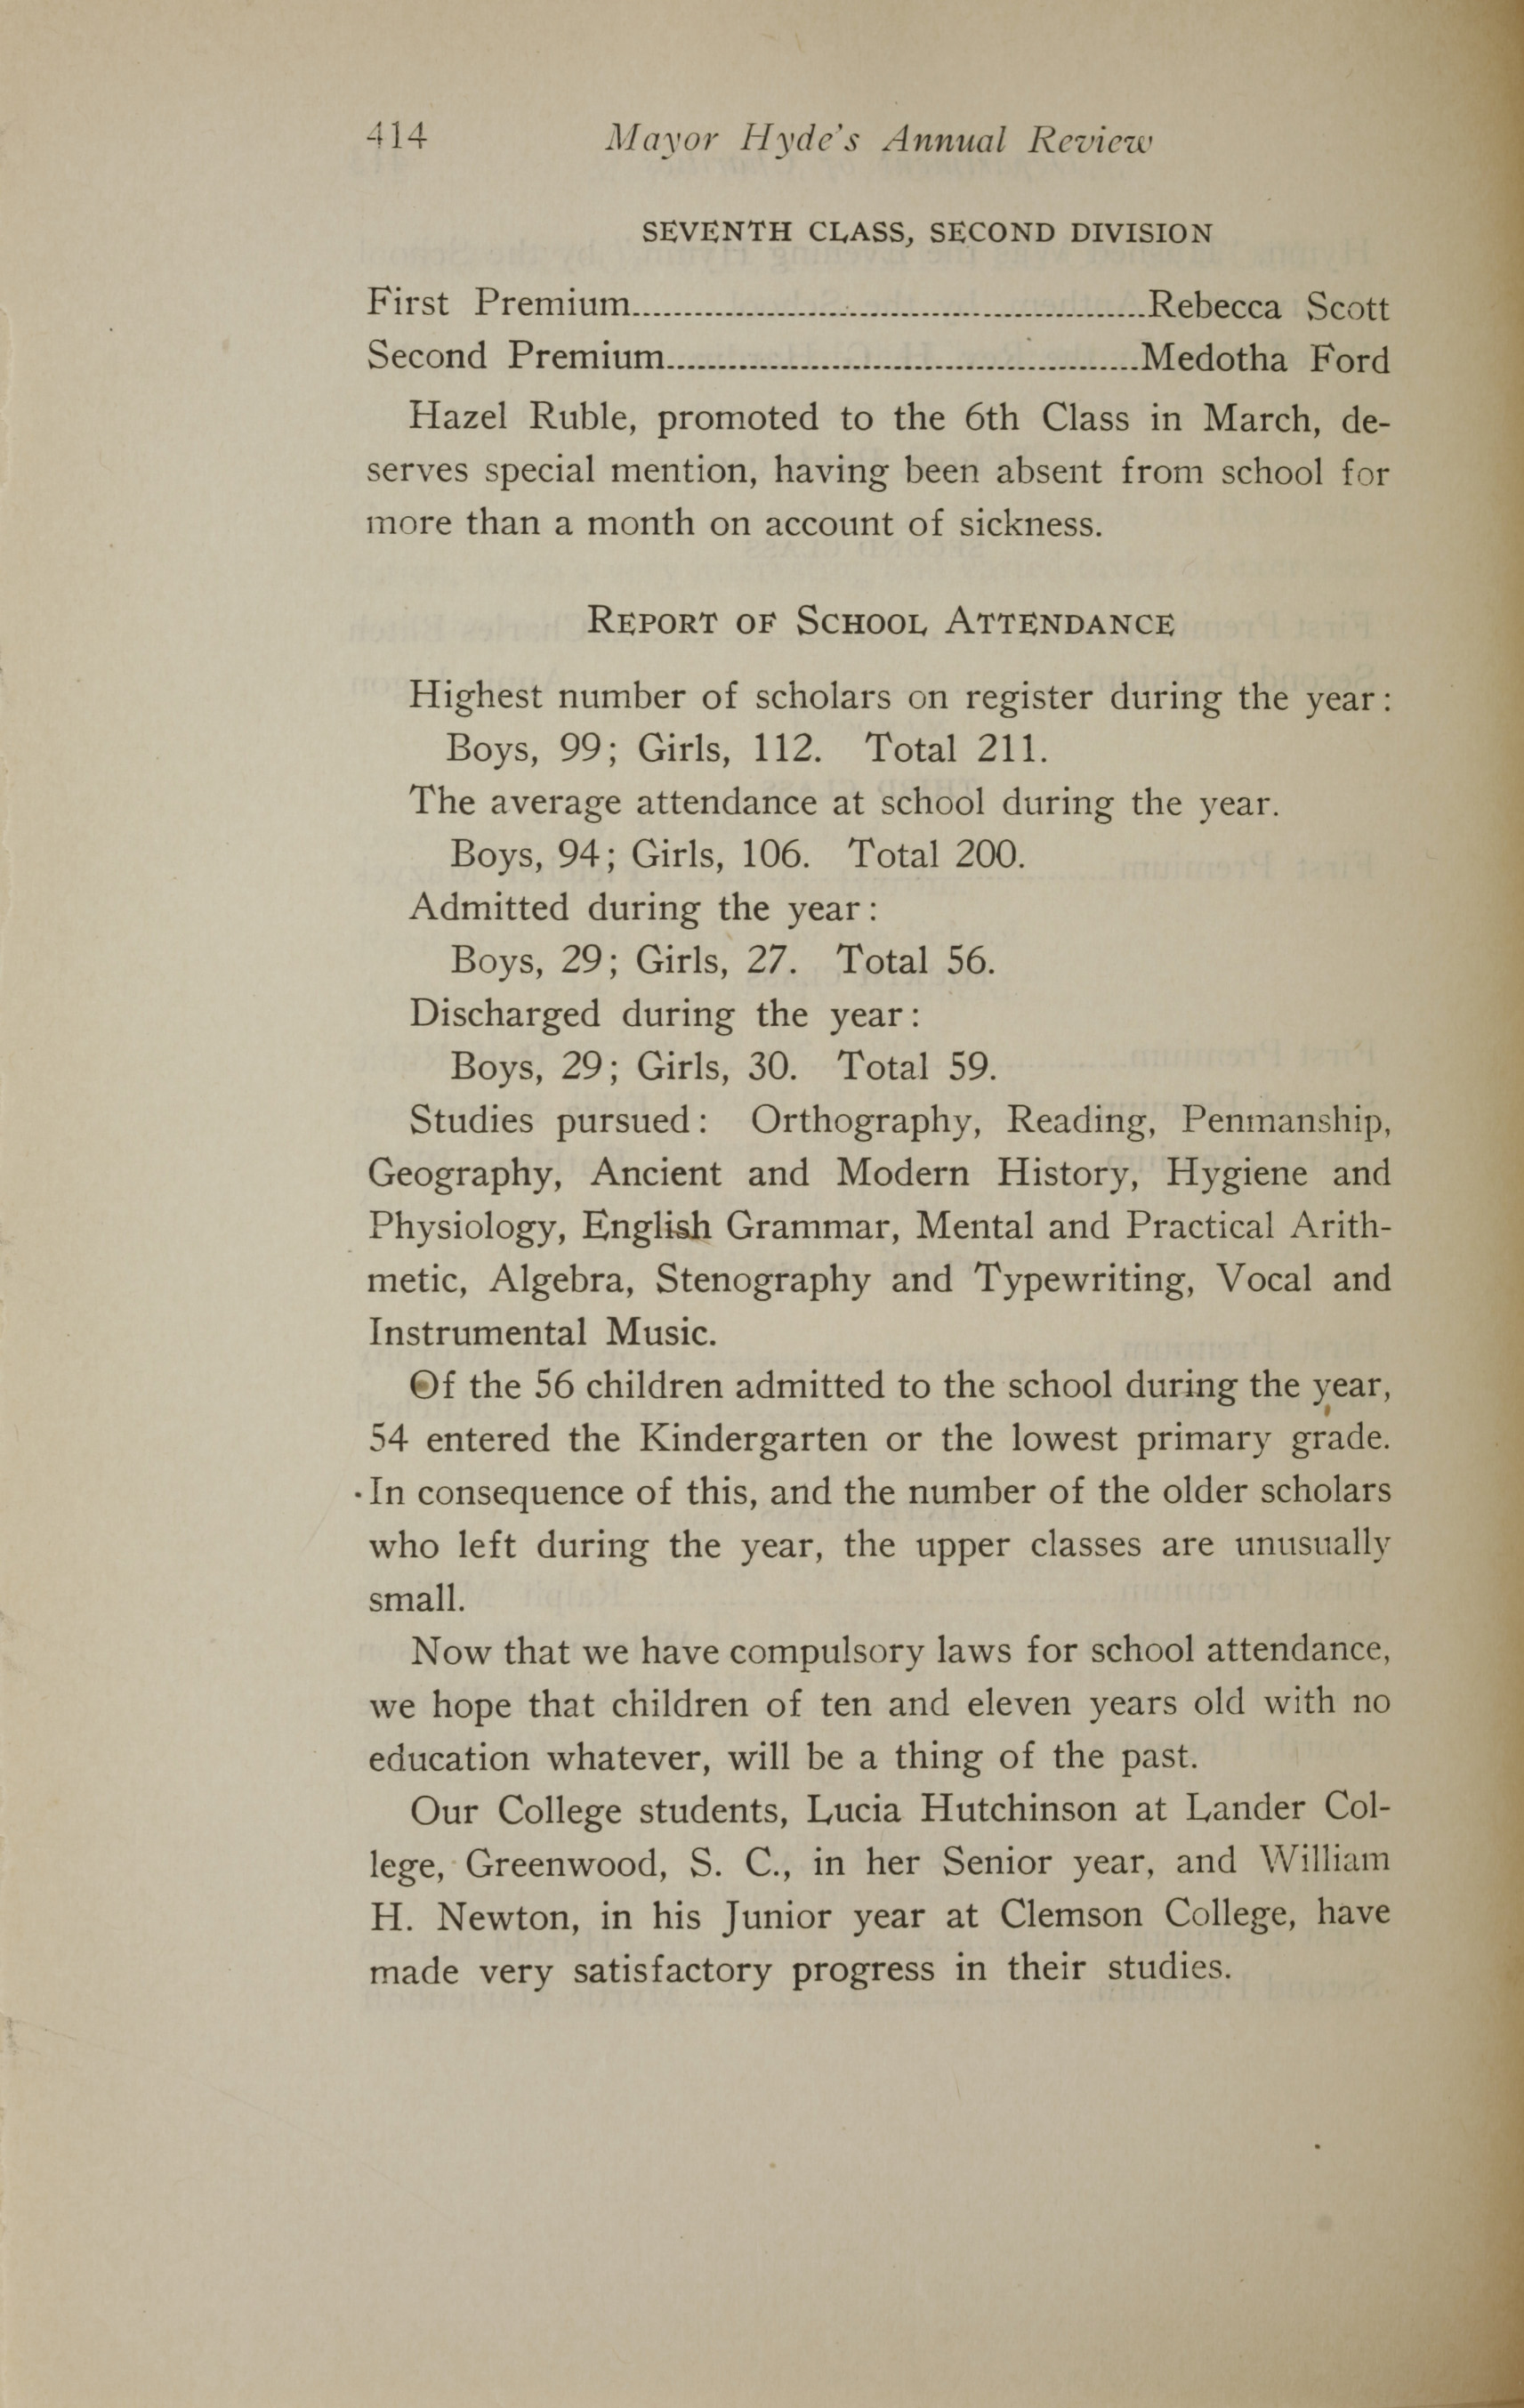 Charleston Yearbook, 1919, page 414